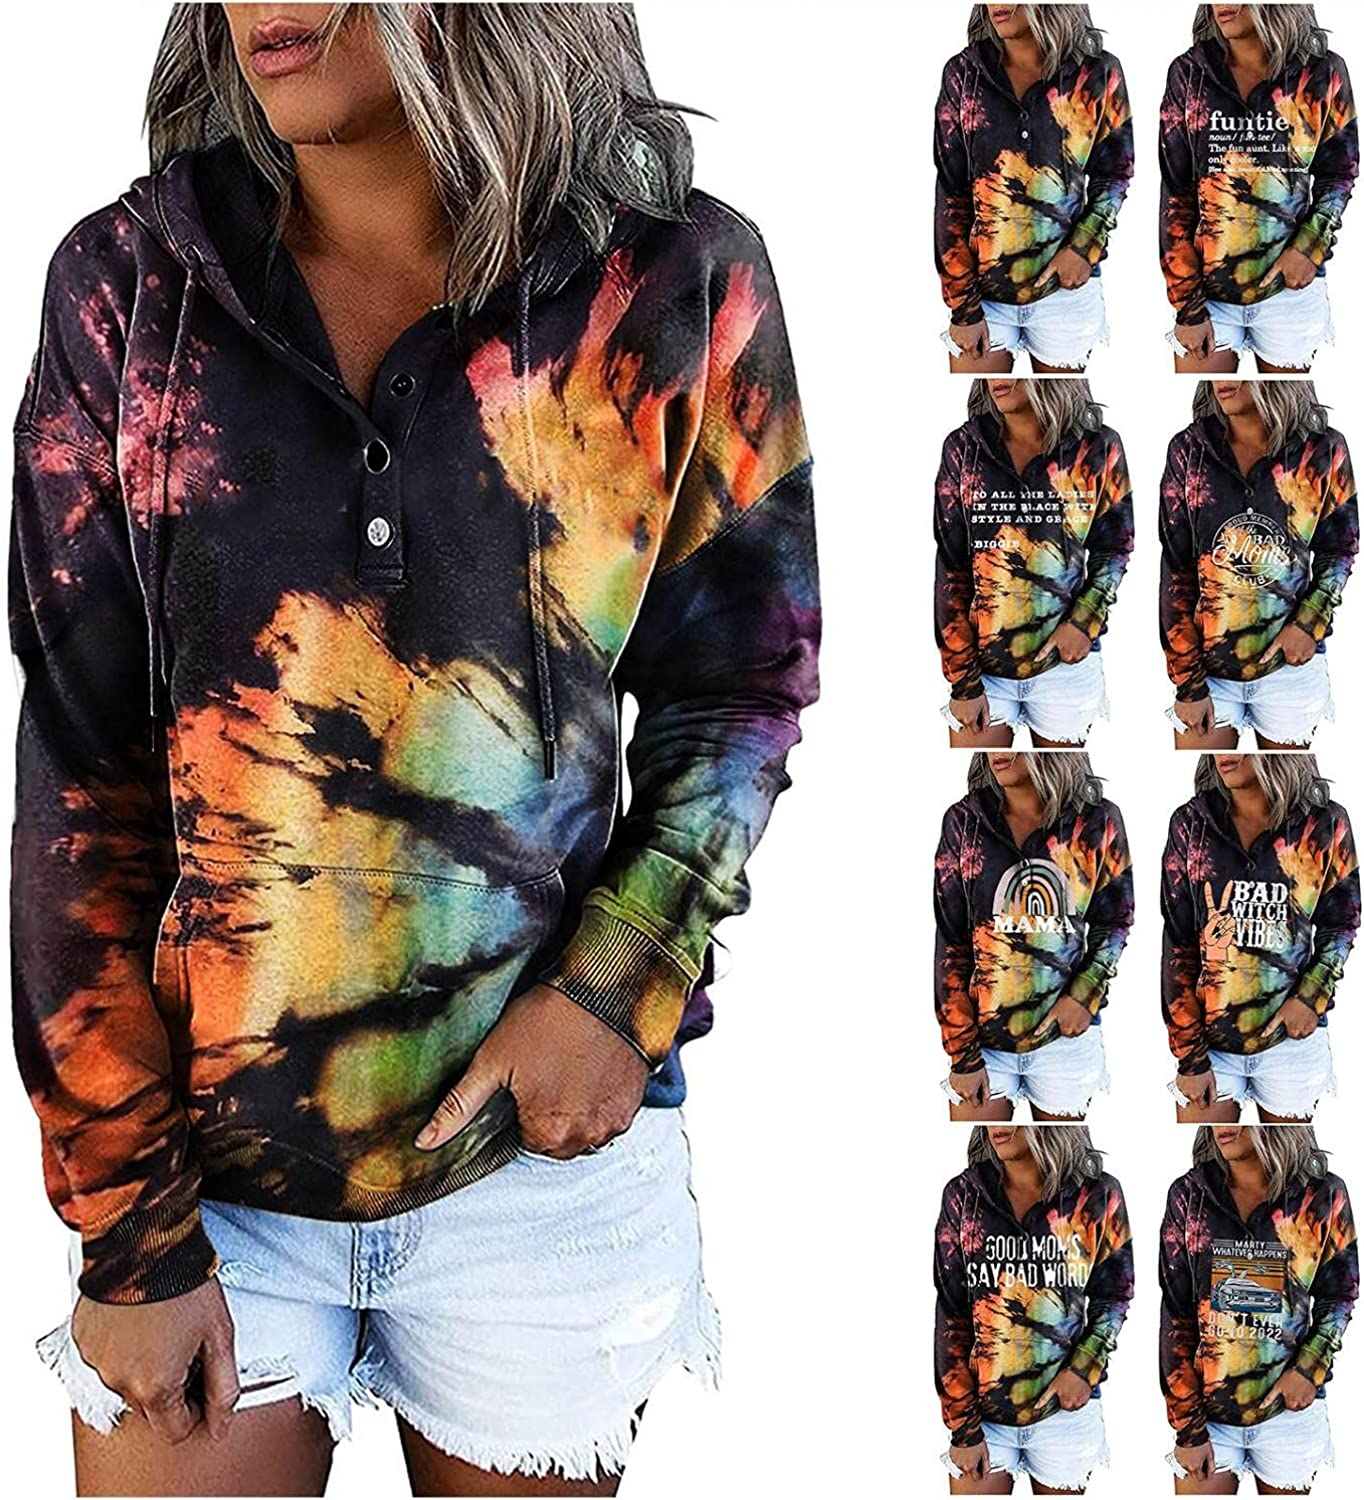 AODONG Hoodies for Womens Fashion Crewneck Tie Dye Hooded Sweatshirts Long Sleeves Loose Pullover Tops